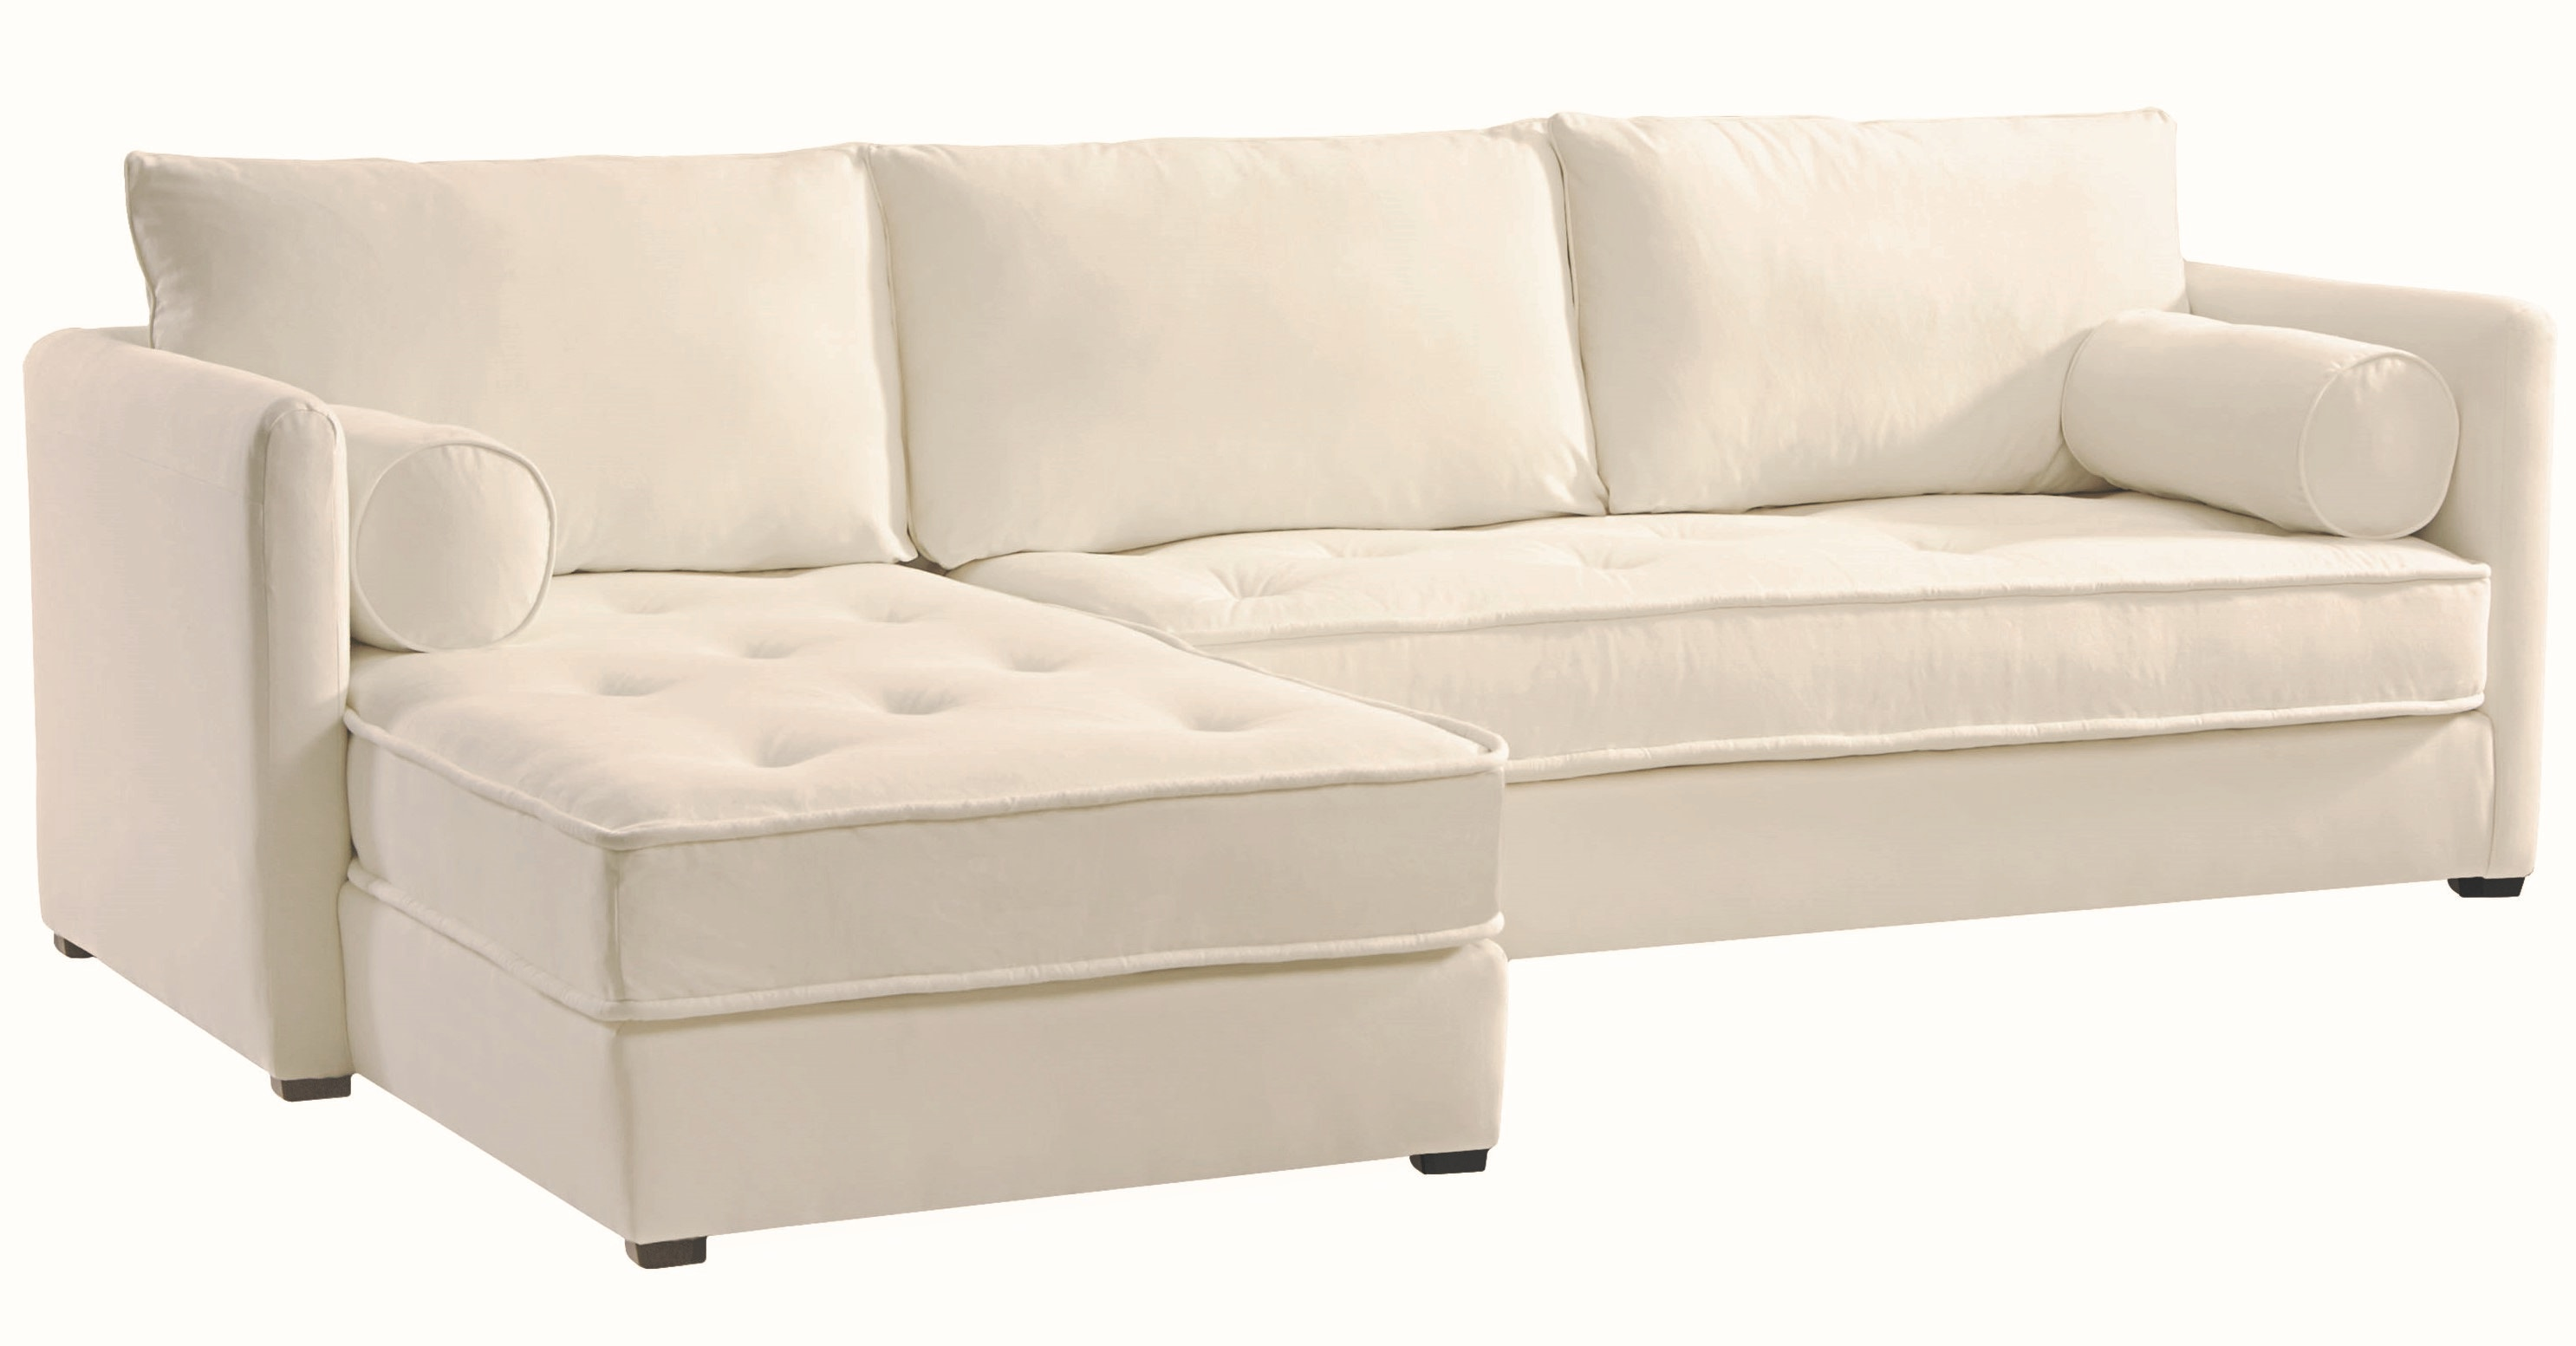 Lee Industries One Arm Chaise 5656 85LF